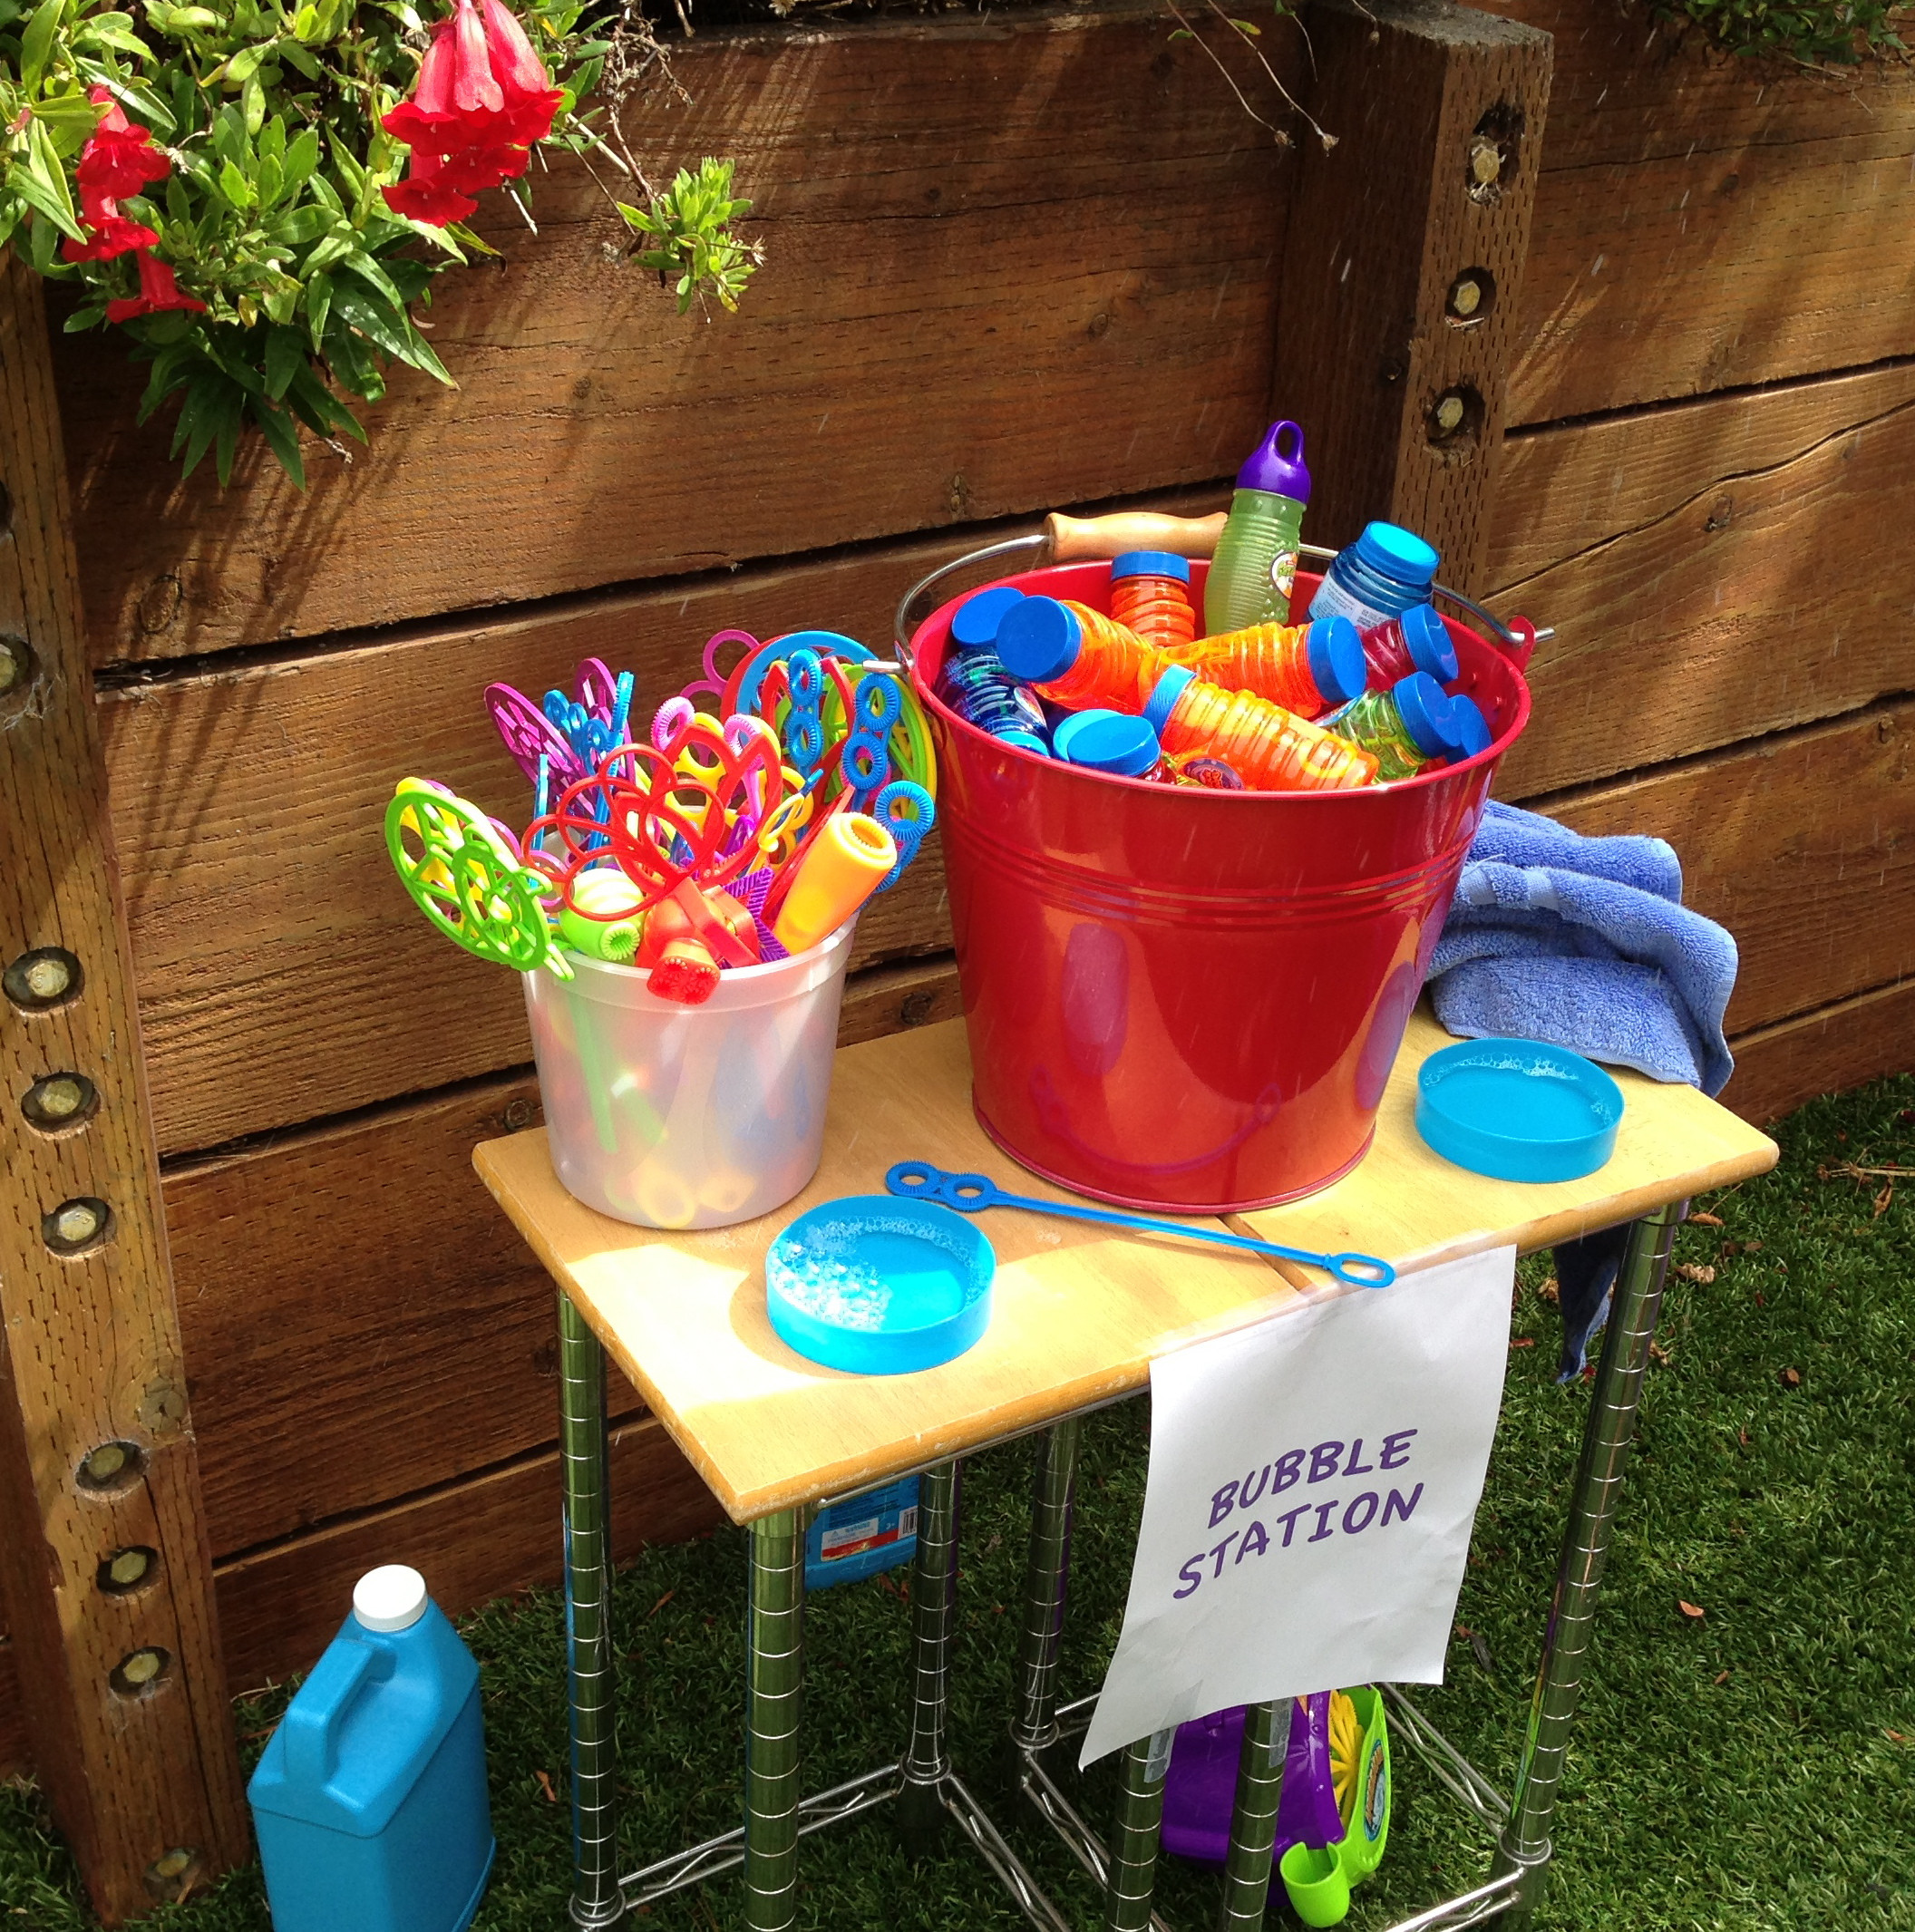 Best ideas about First Birthday Party Game . Save or Pin Today's Hint 7 Affordable Activity Ideas for First Now.